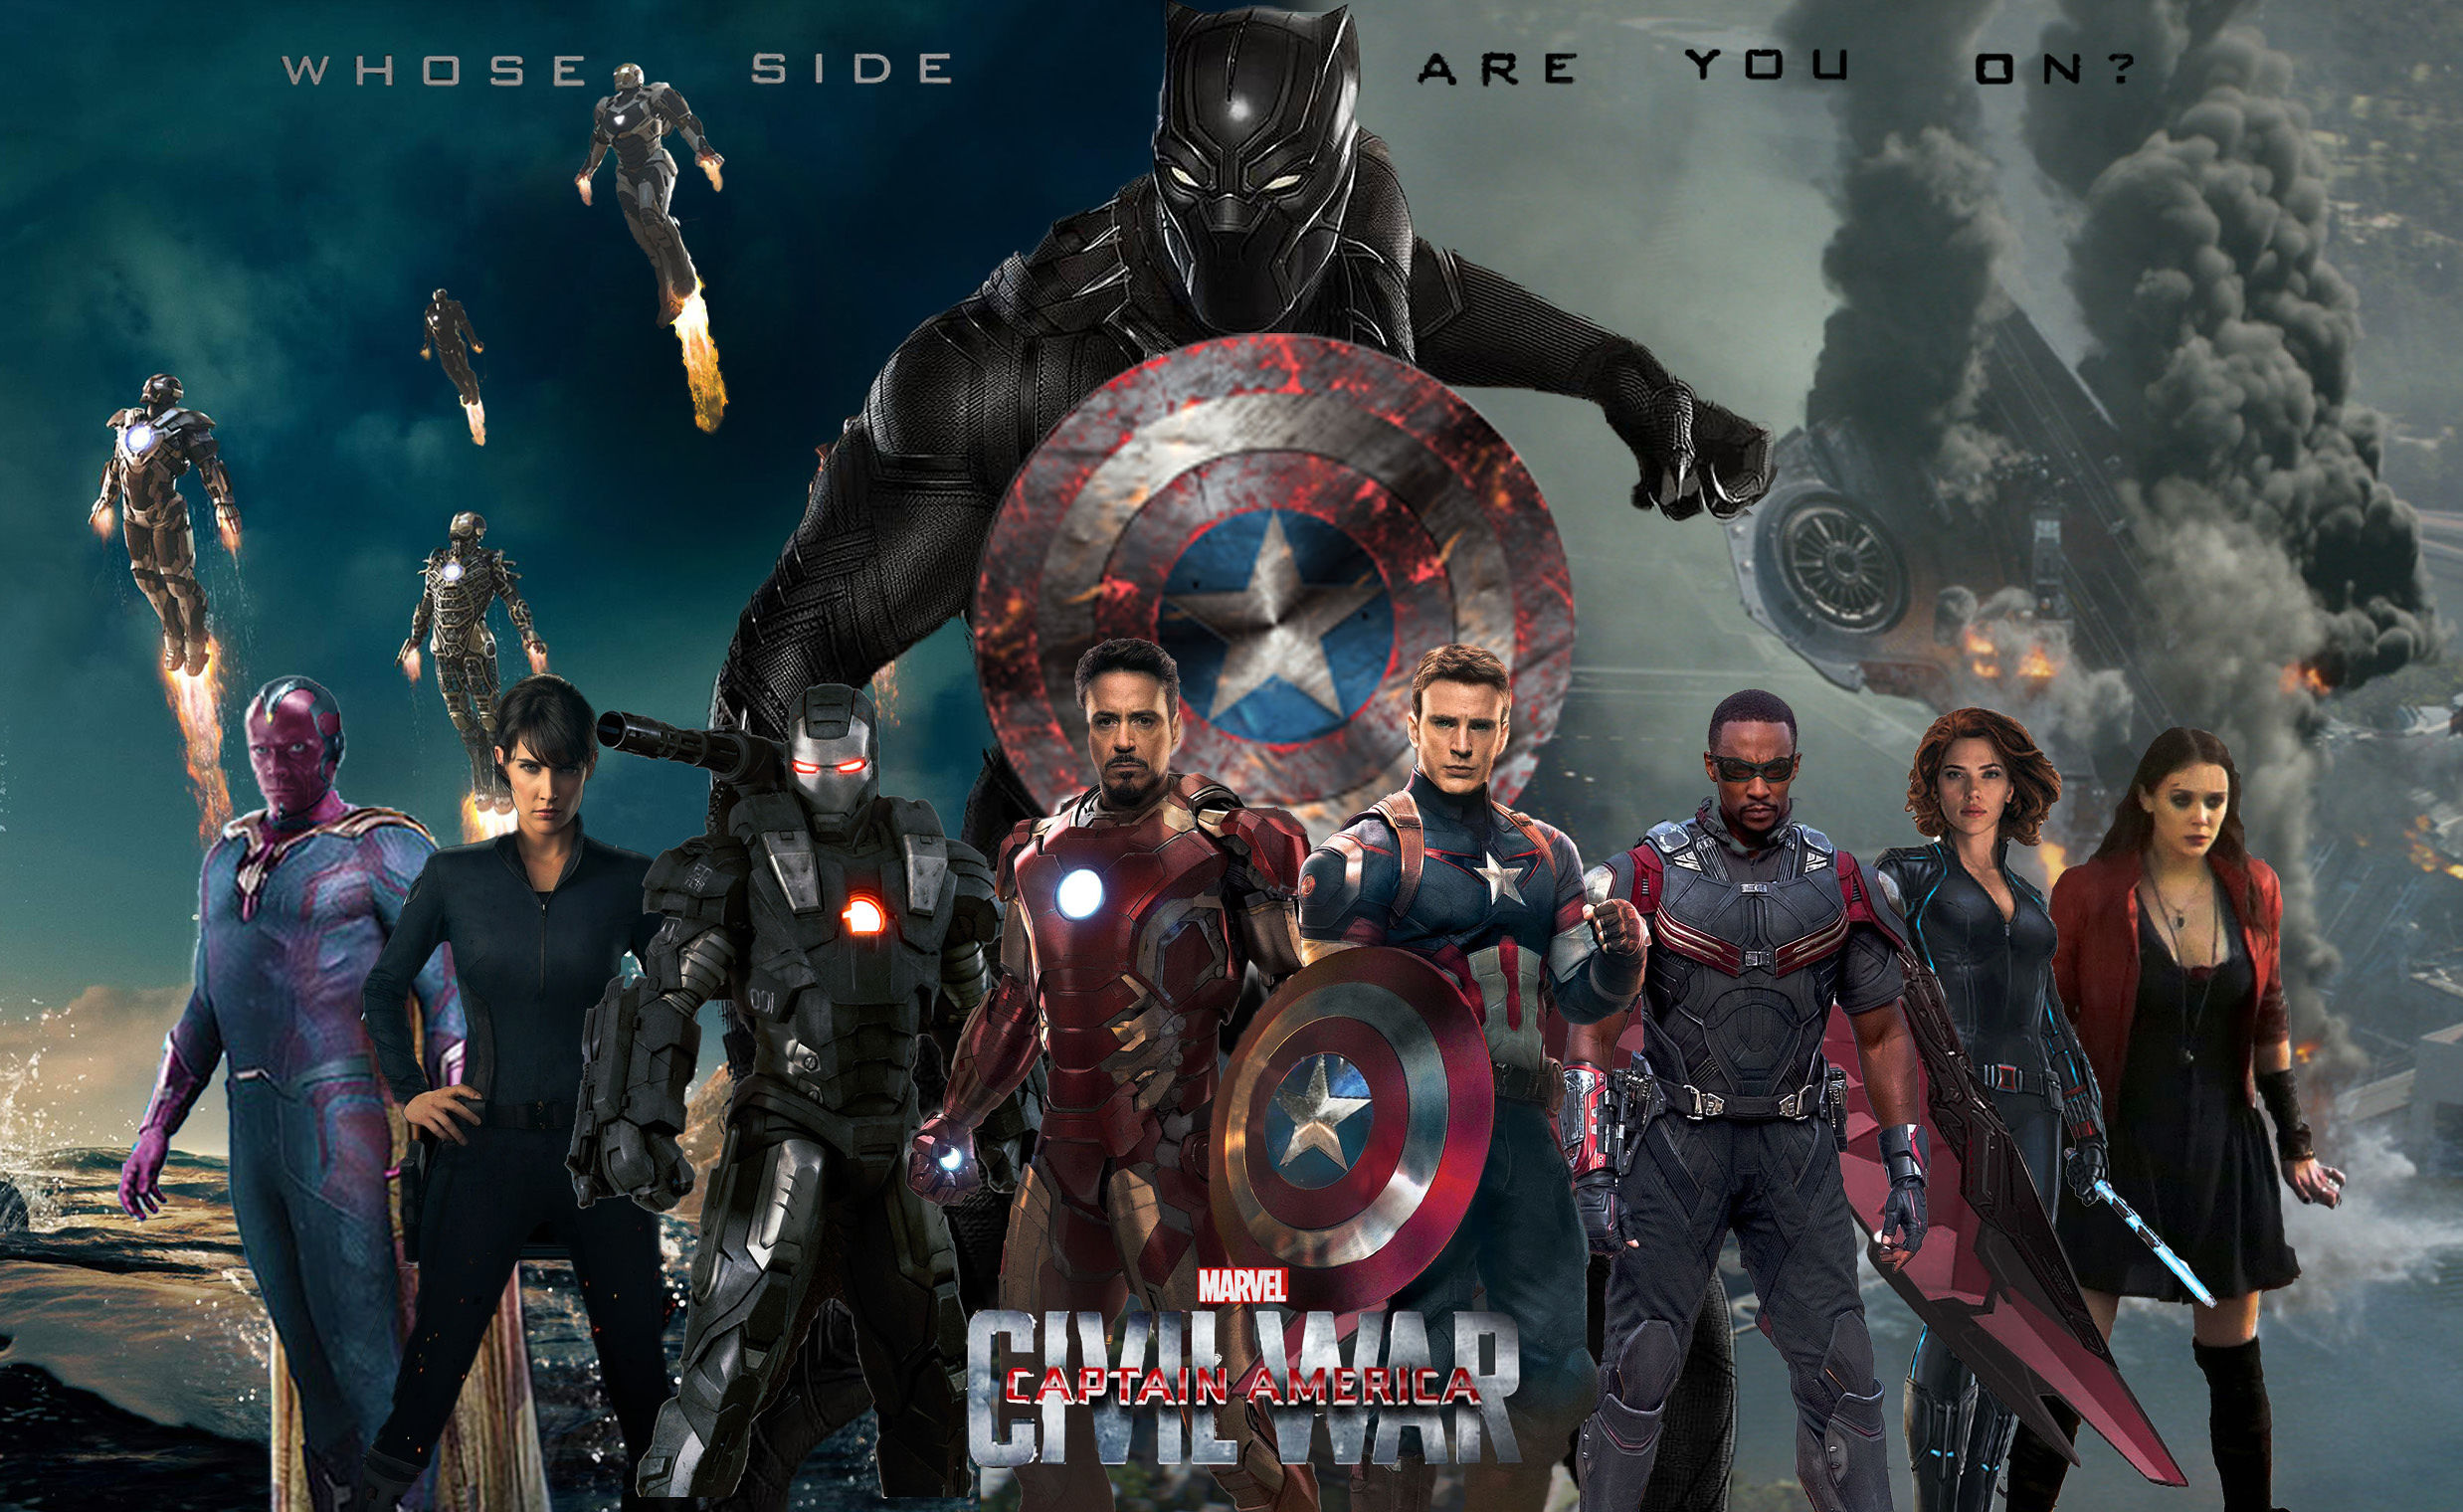 Captain America Civil War wallpapers High Resolution and Quality 2476x1520